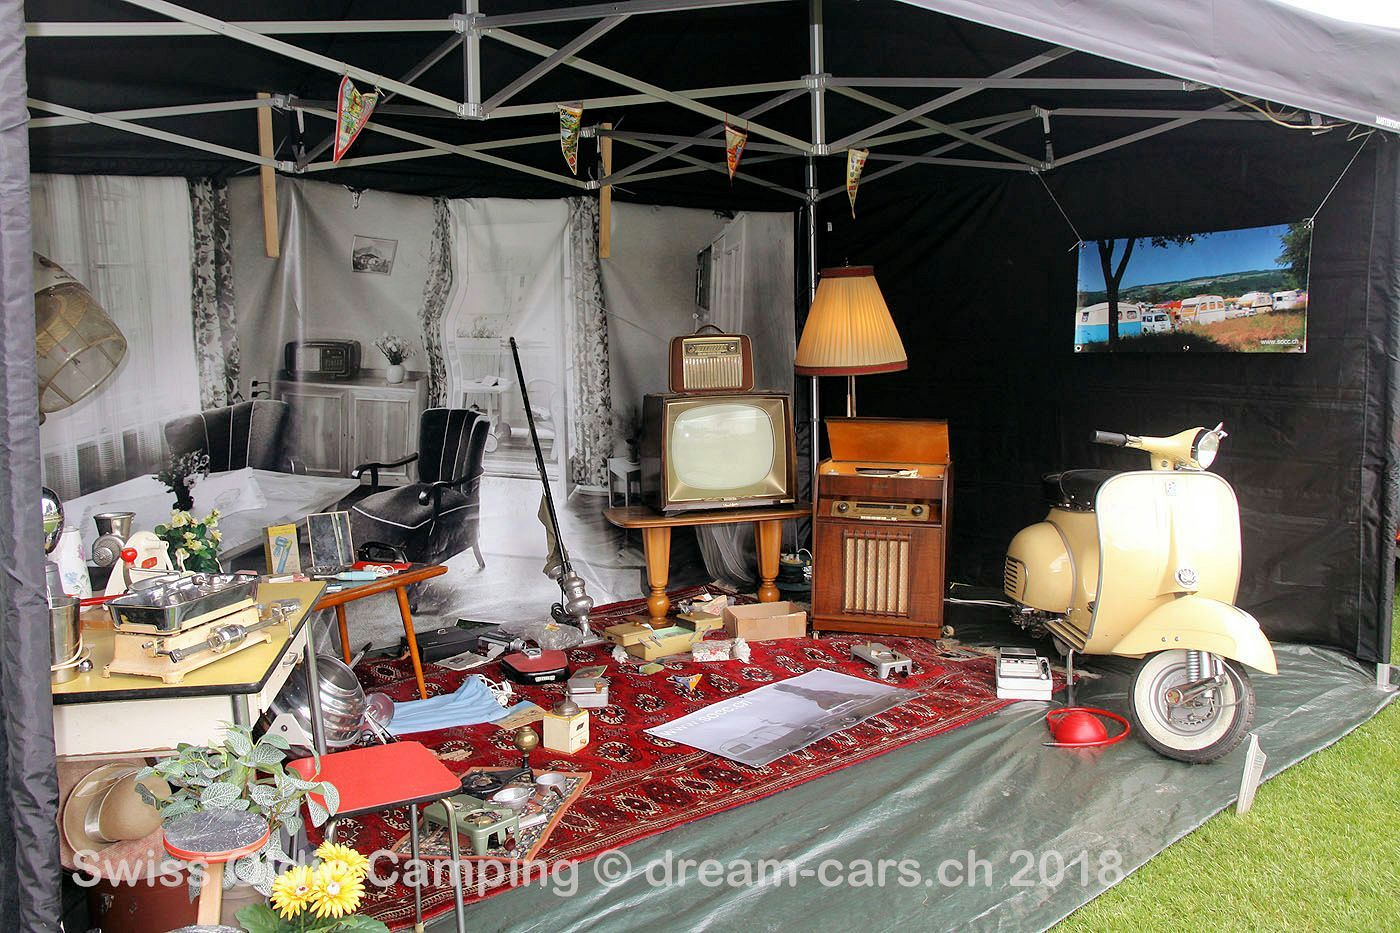 Swiss Oldie Camping 2018